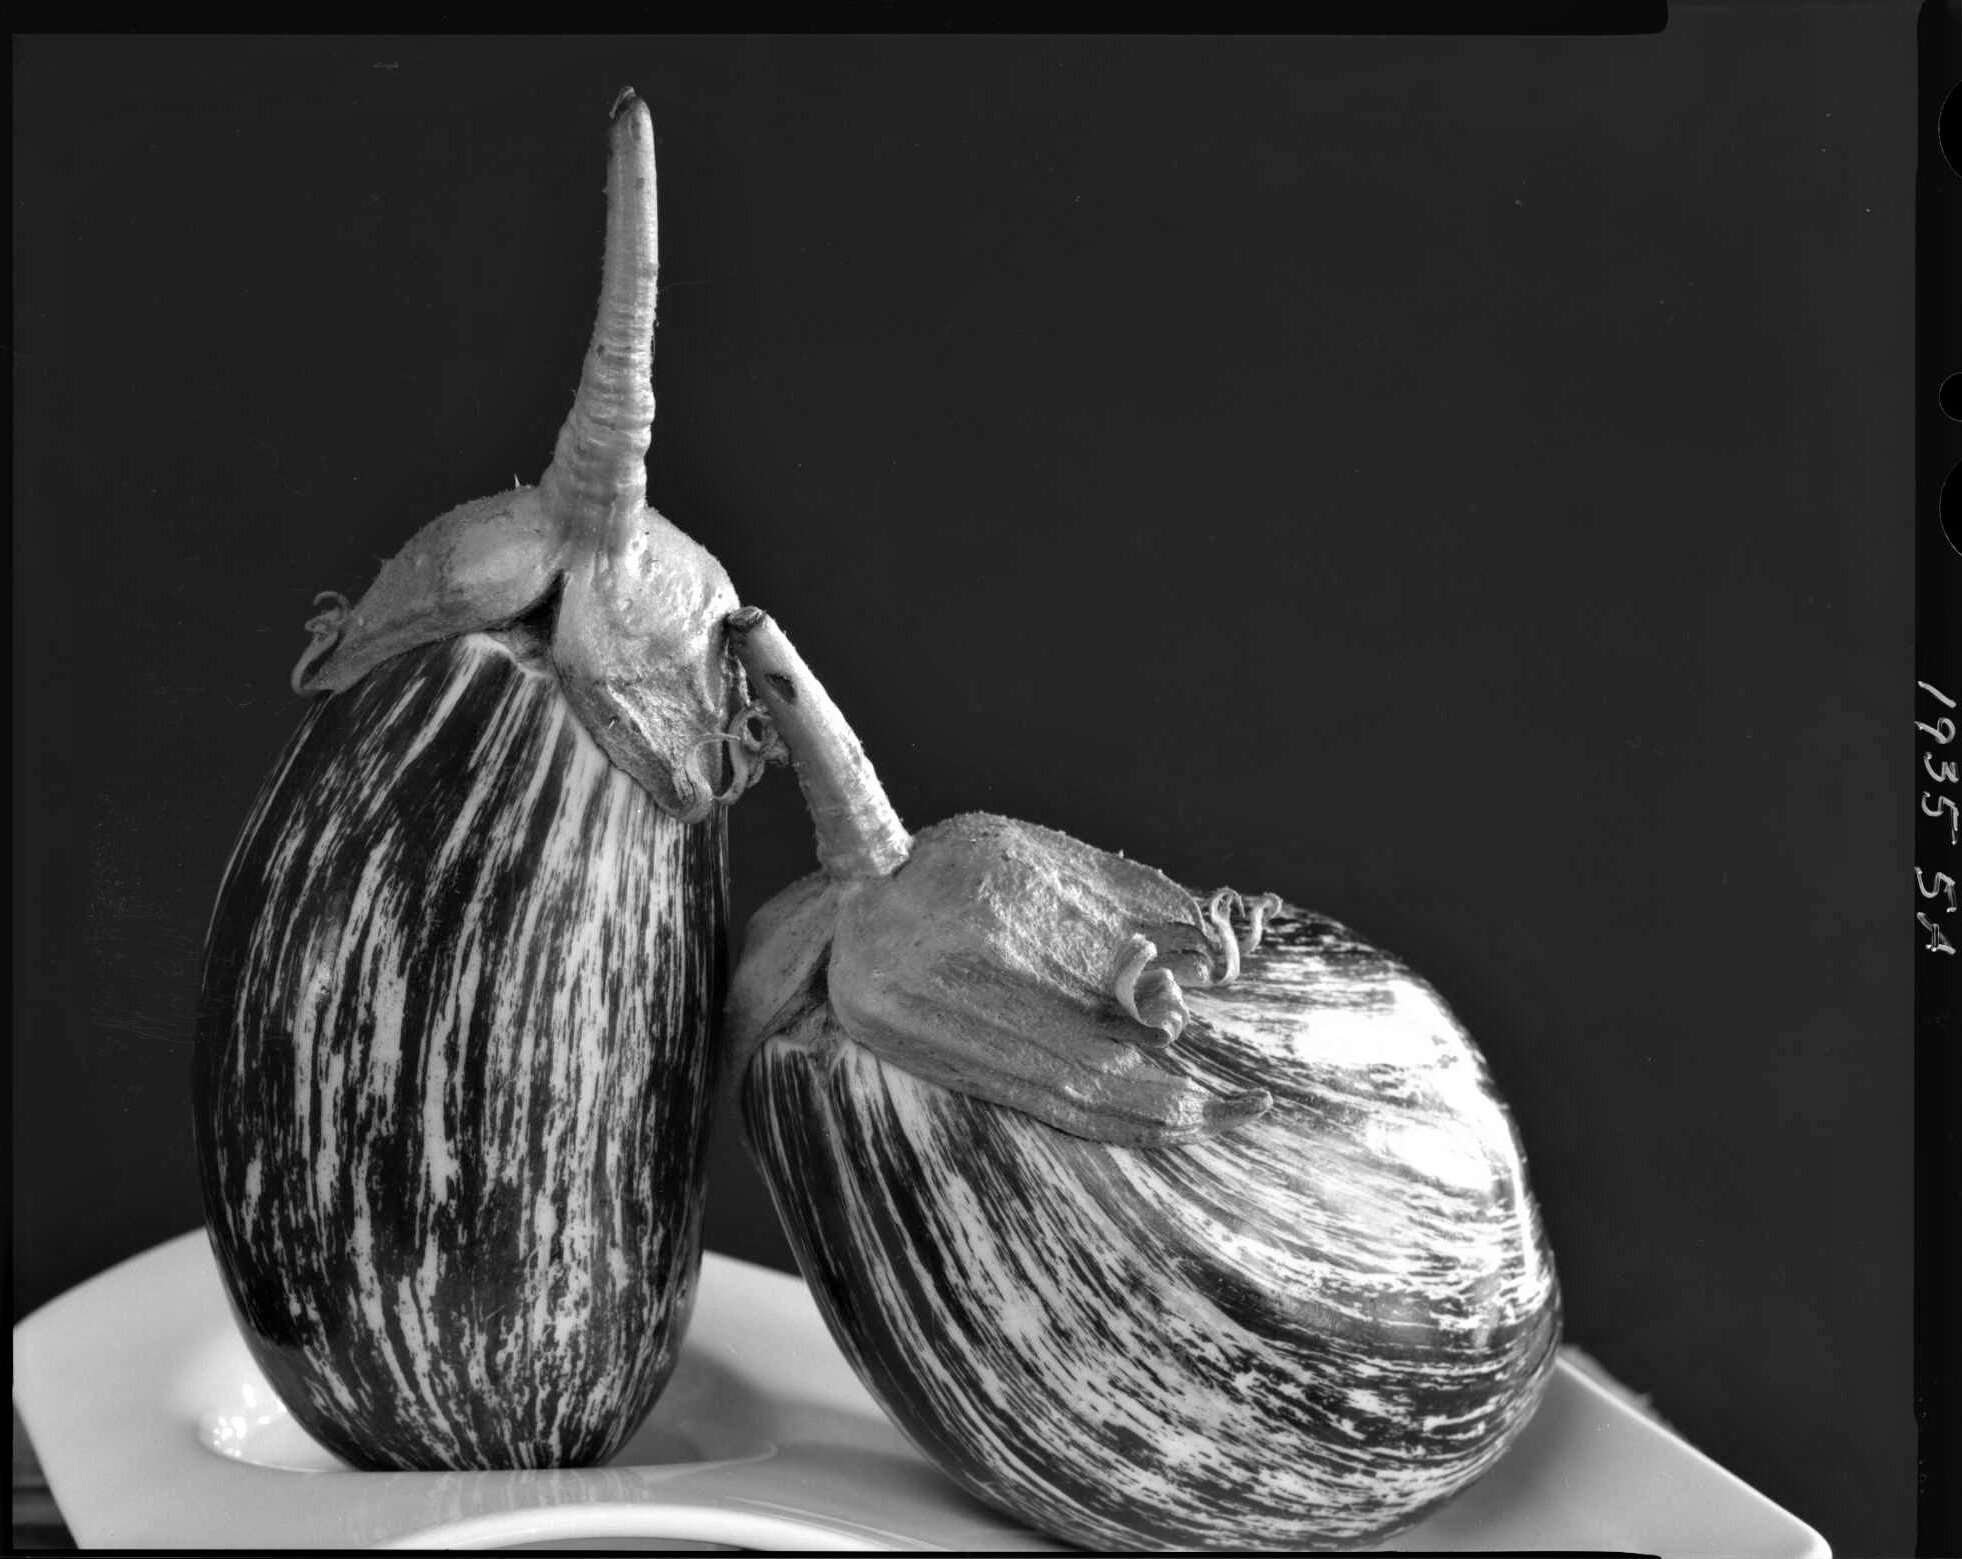 Striped eggplant, from the Produce Series